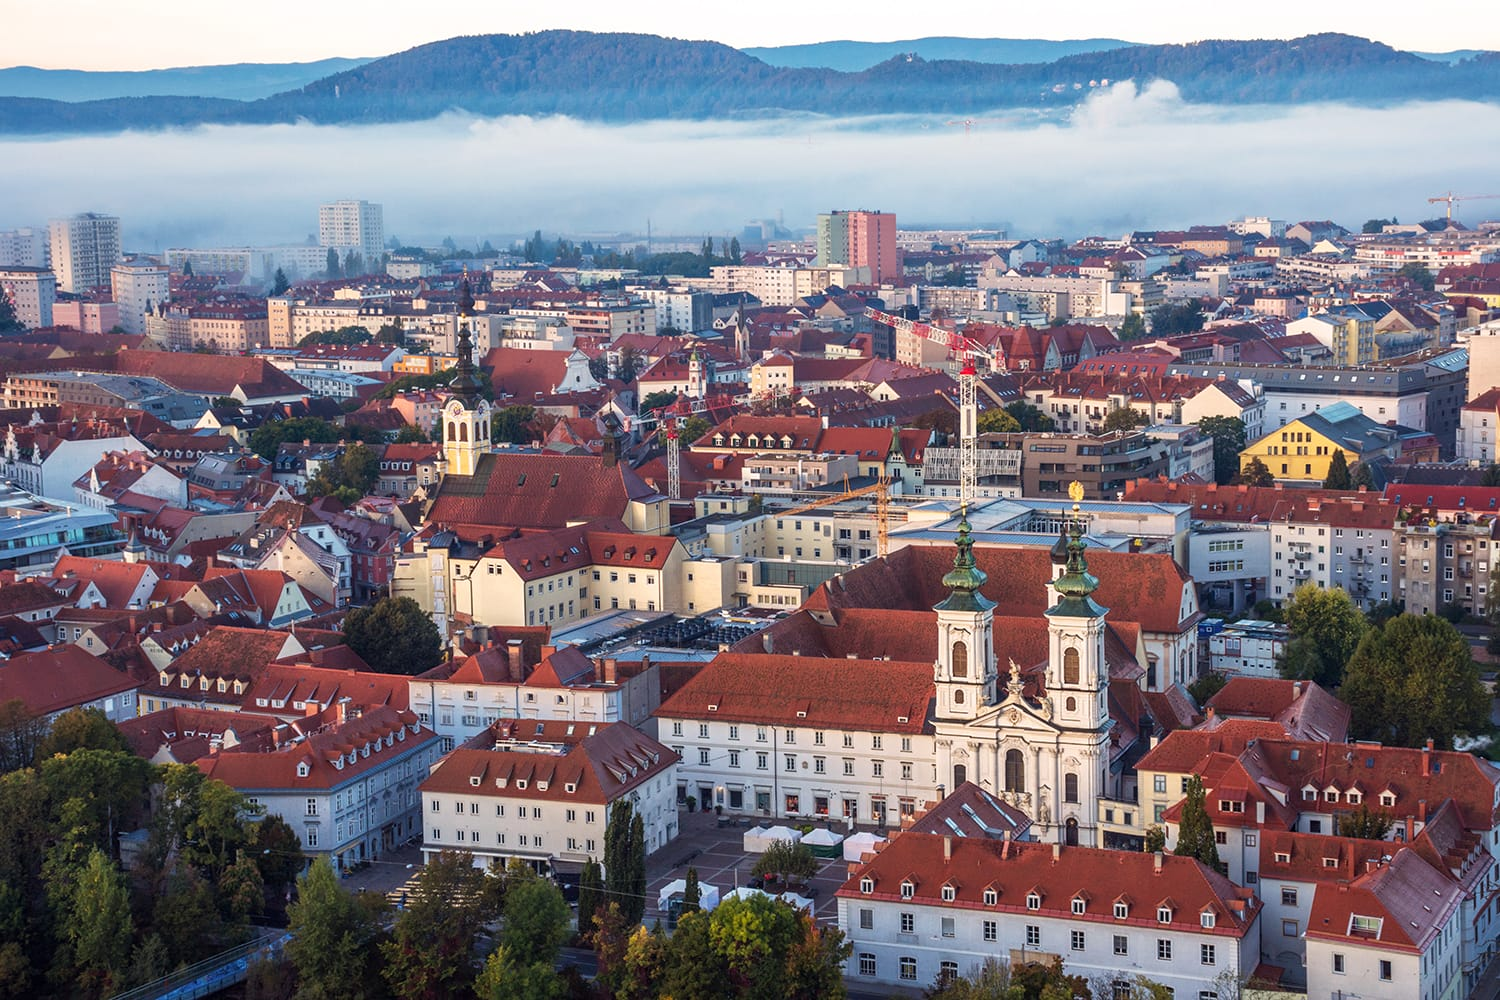 Cityscape of Graz with Mur river and Mariahilfer church (Mariahilferkirche), view from the Shlossberg hill, in Graz, Styria region, Austria